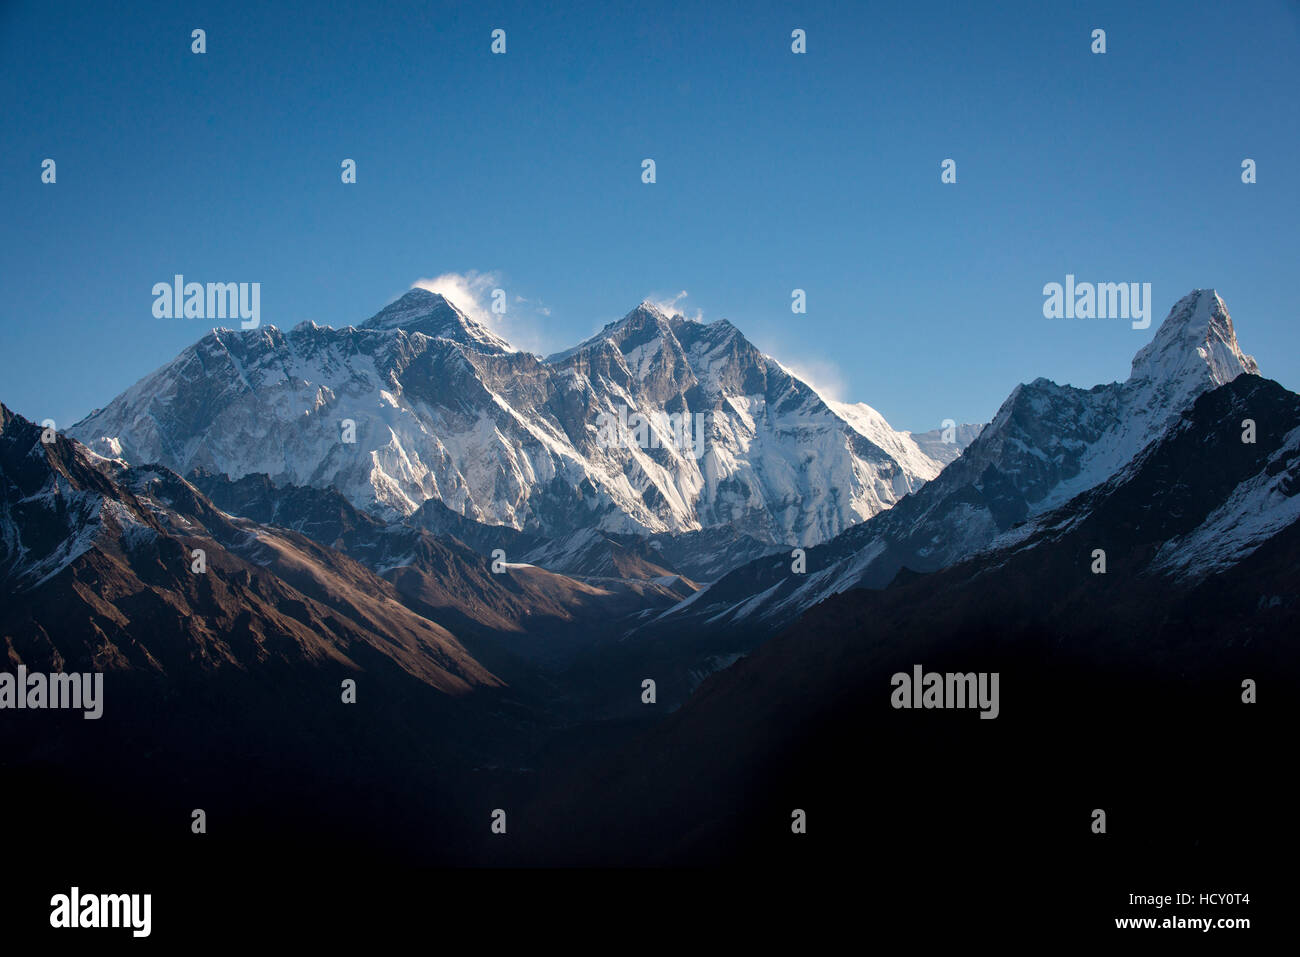 A view of Mount Everest, distant peak to the left behind the Nuptse-Lhotse ridge, from Kongde, Khumbu Region, Nepal - Stock Image